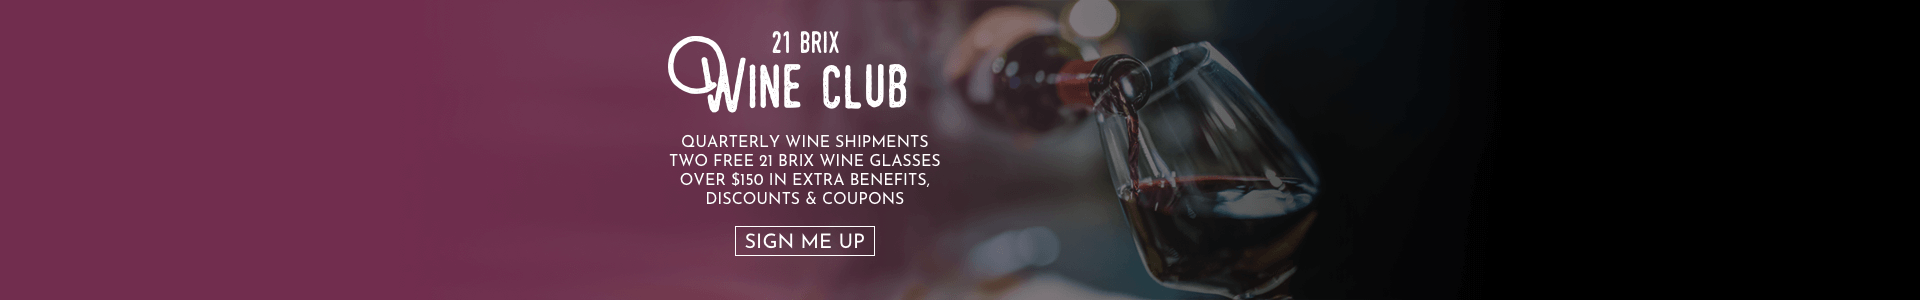 Wine Club - Sign Up!